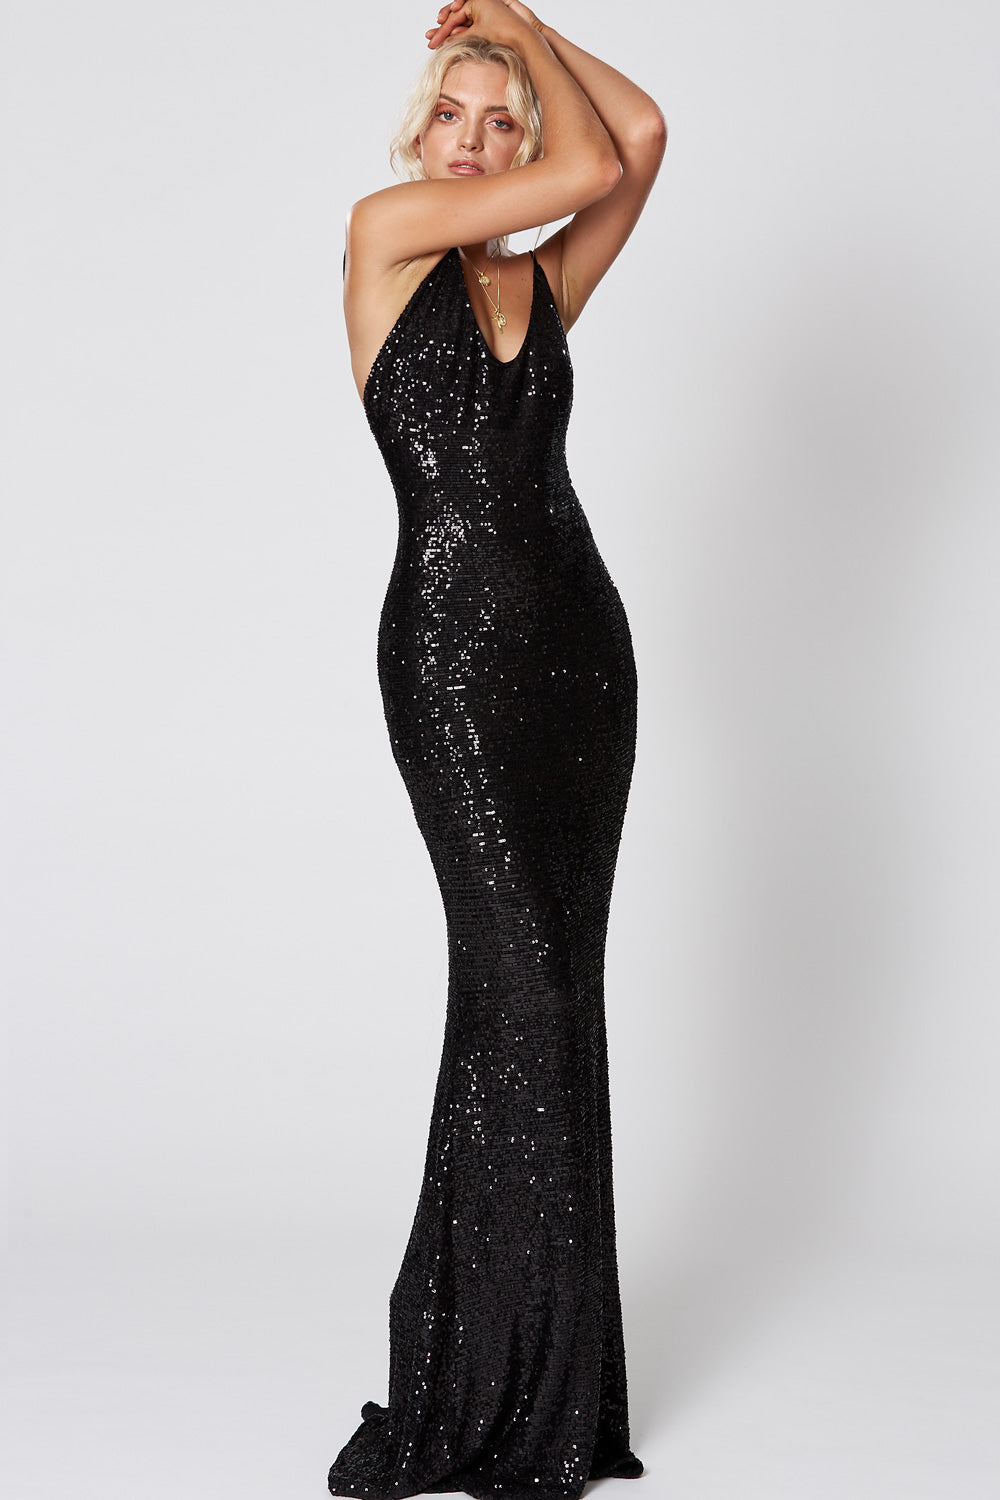 BROADWAY MAXI DRESS BLACK